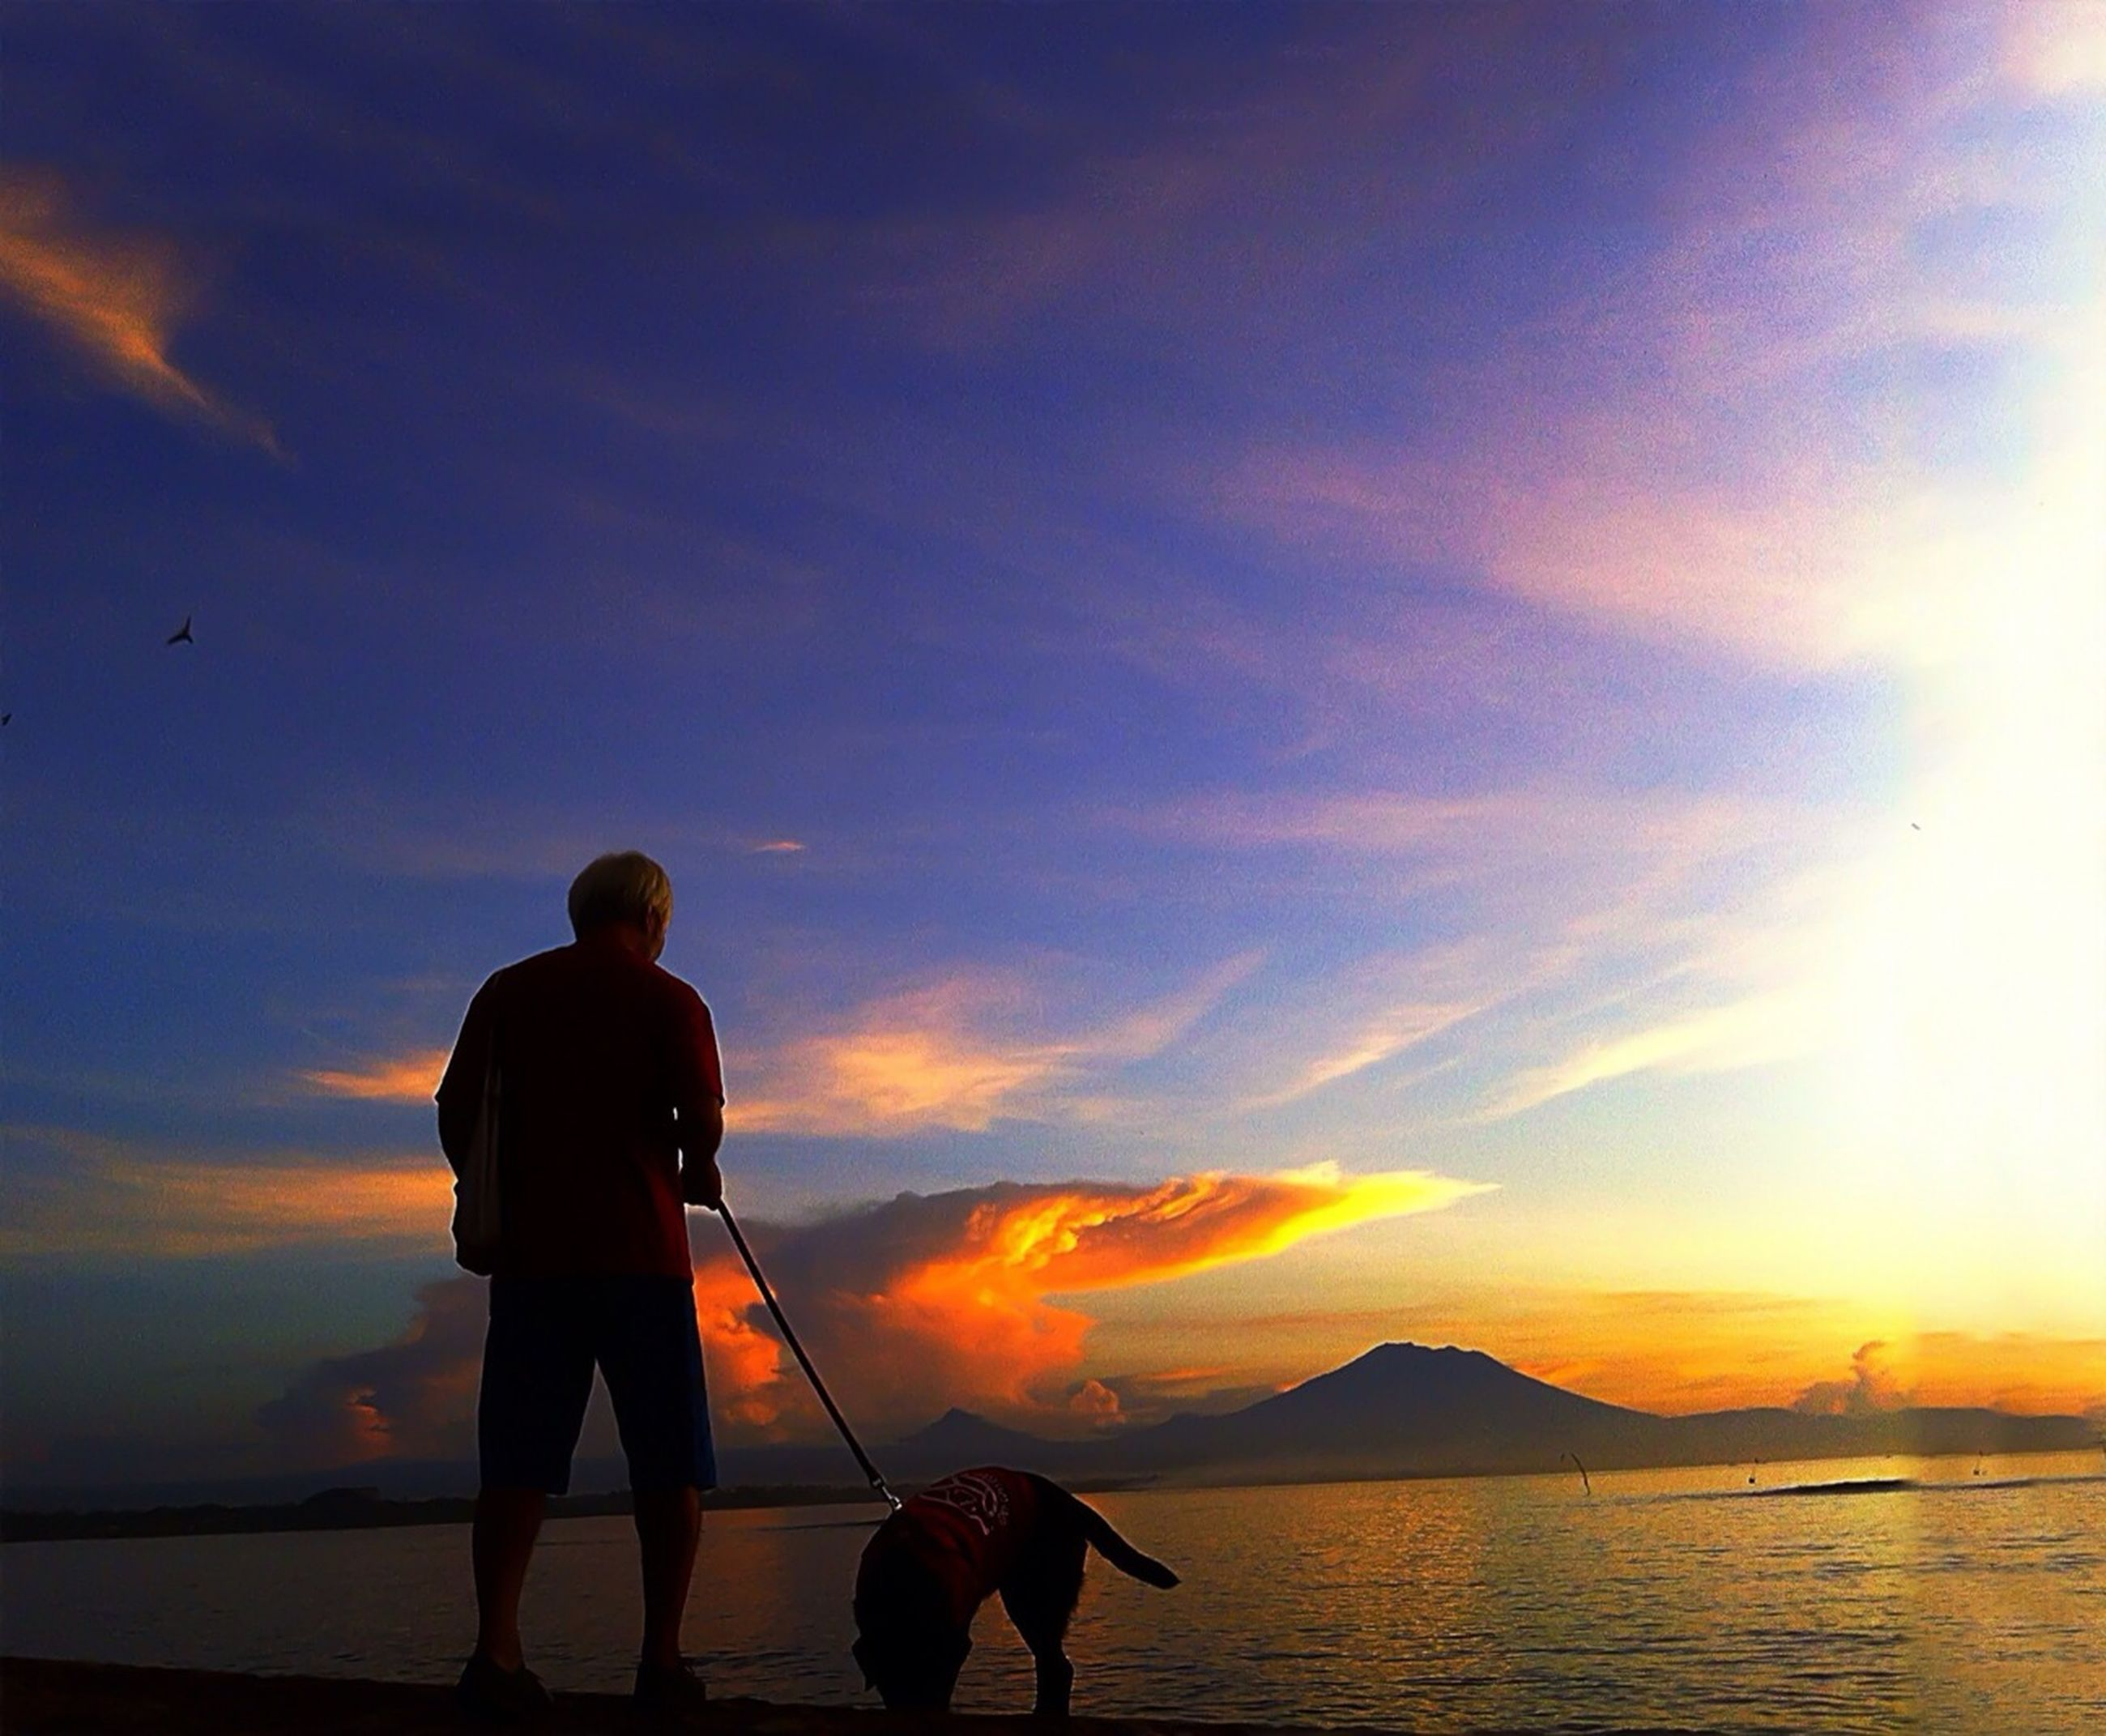 sunset, sea, silhouette, sky, water, horizon over water, lifestyles, scenics, beauty in nature, leisure activity, orange color, sun, beach, men, standing, tranquil scene, tranquility, idyllic